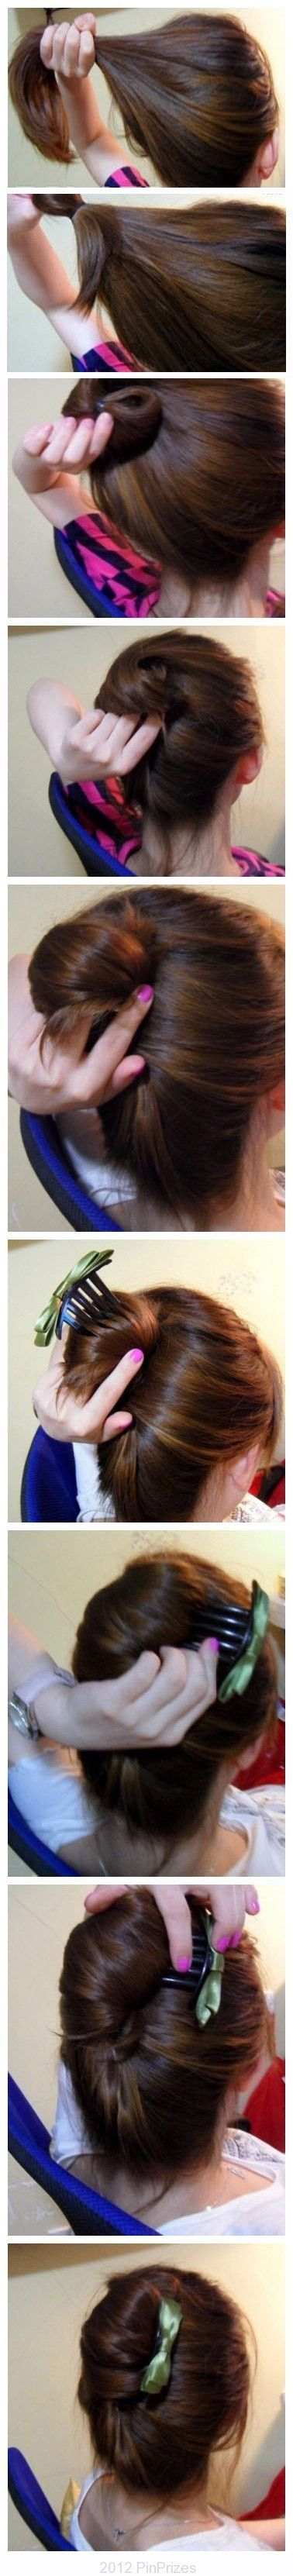 best hair dos images on pinterest braids make up and hairstyles